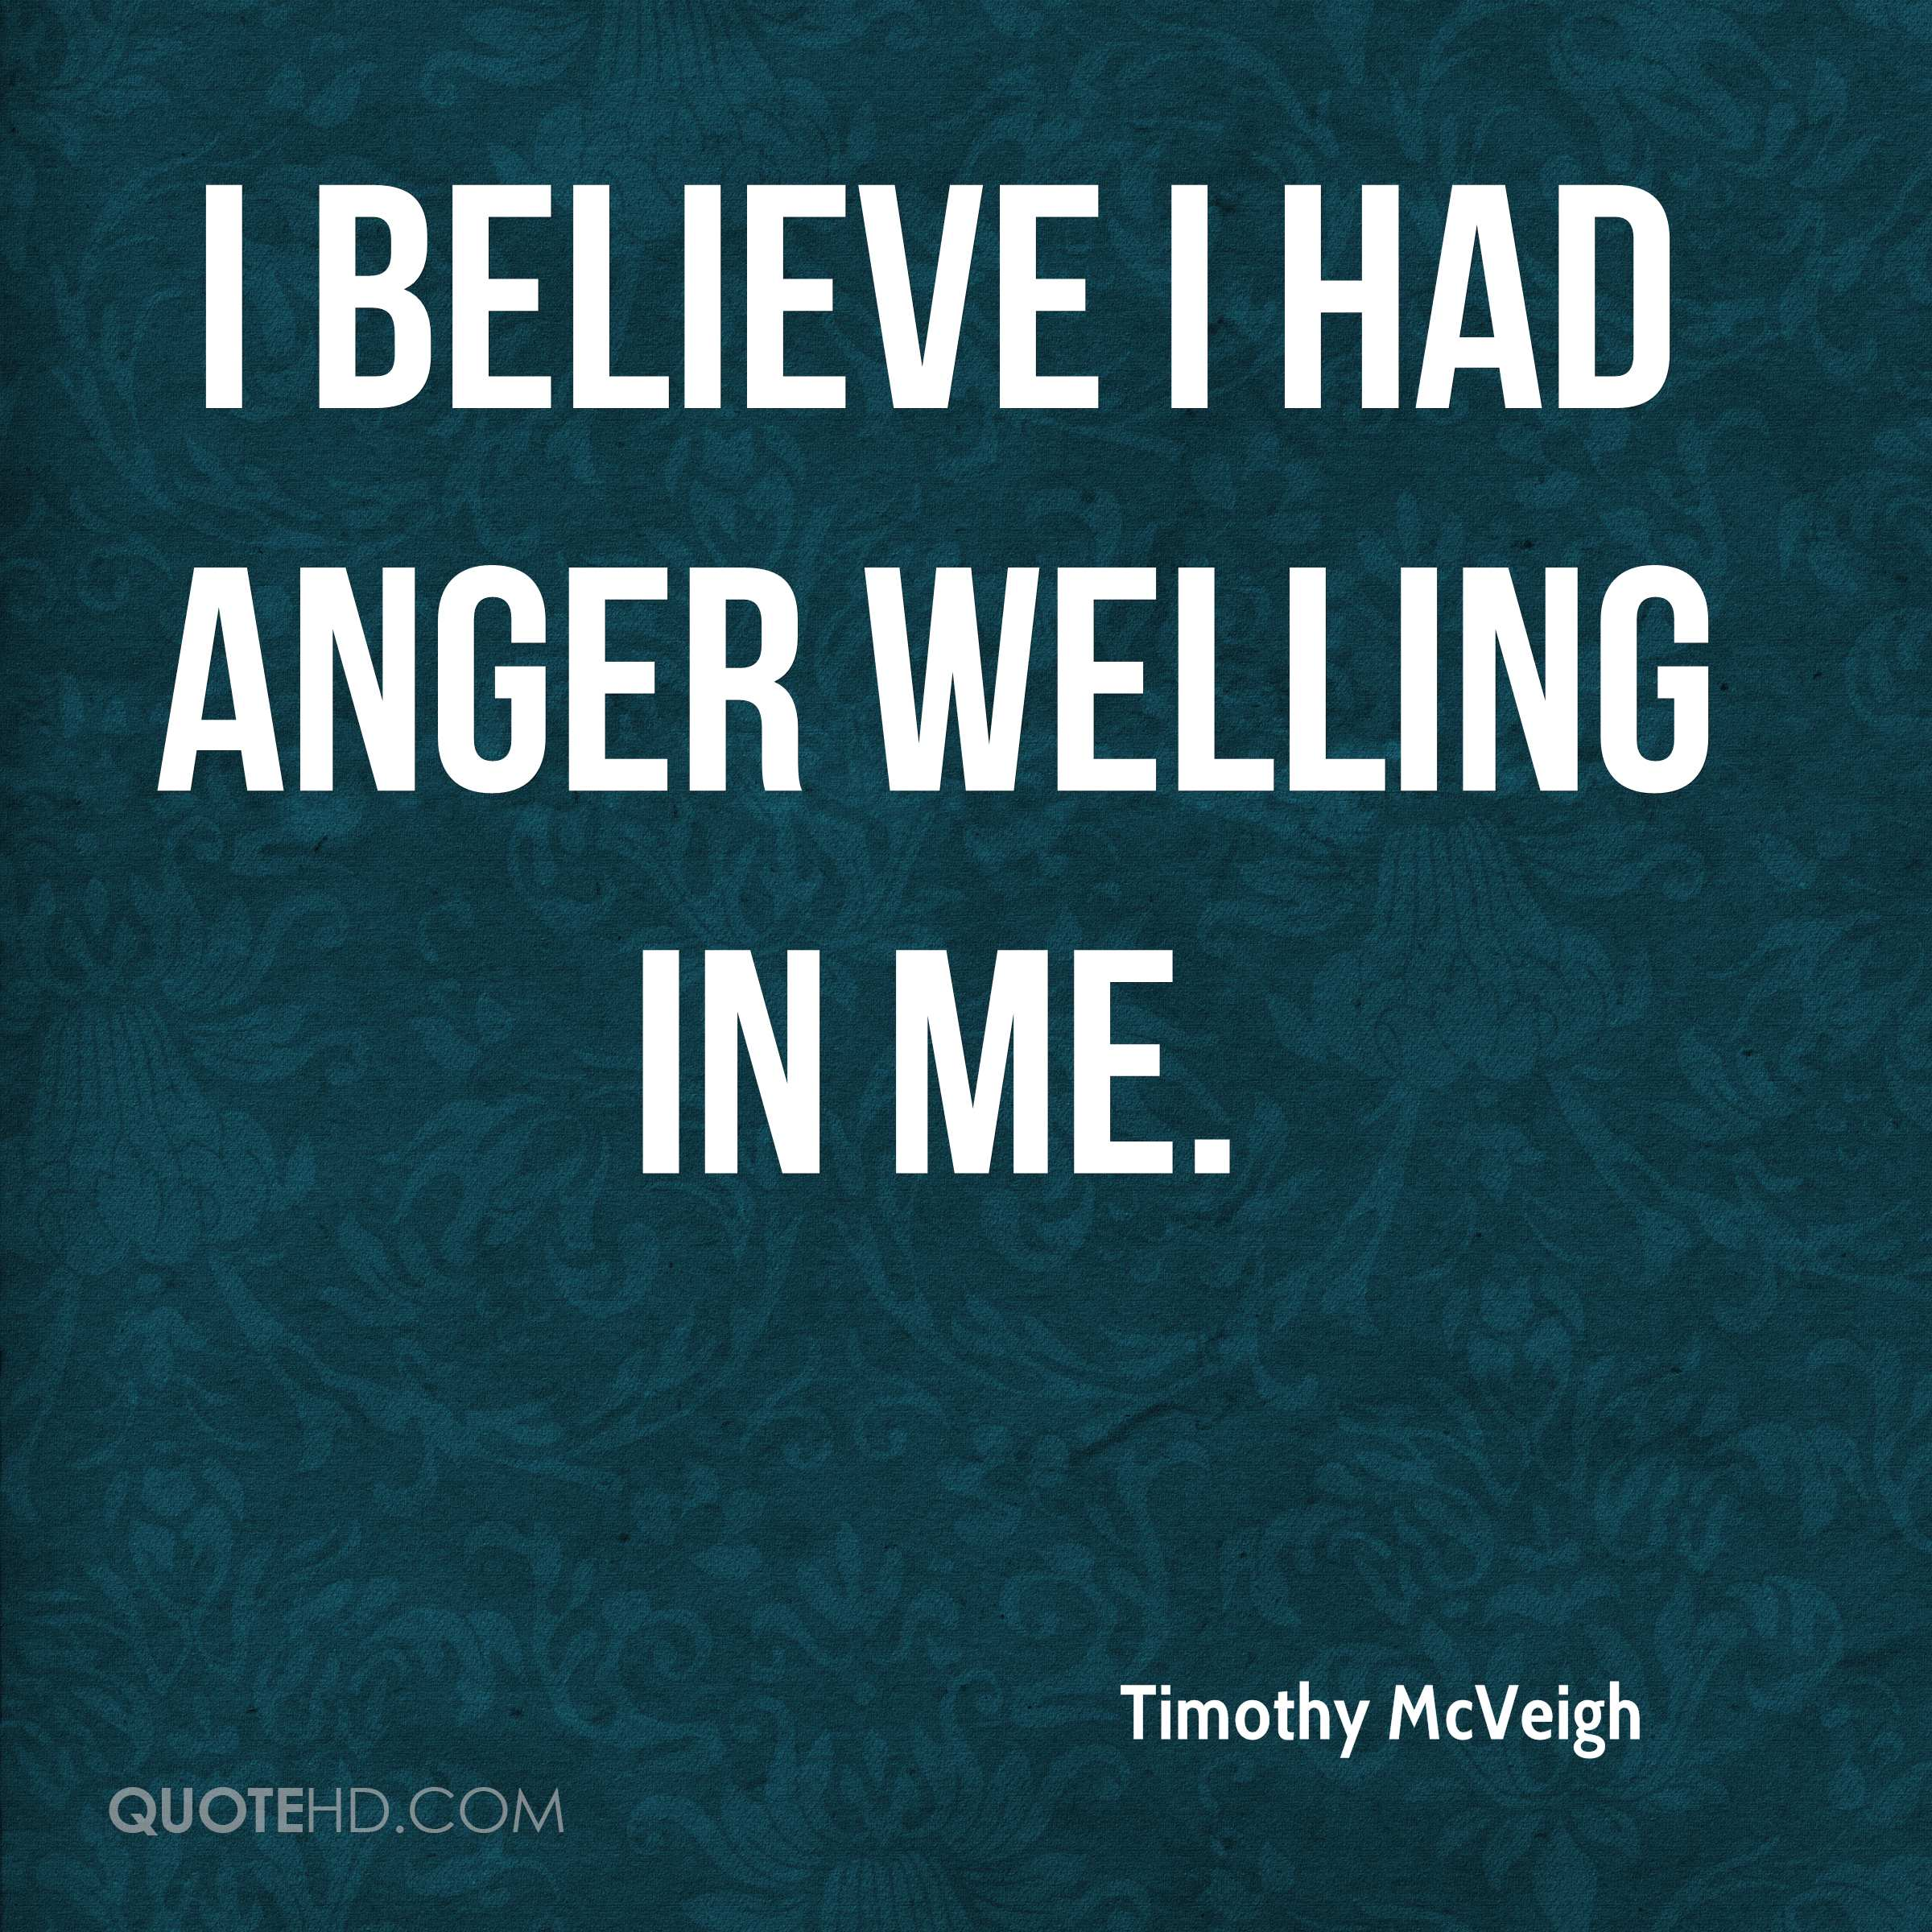 I believe I had anger welling in me.